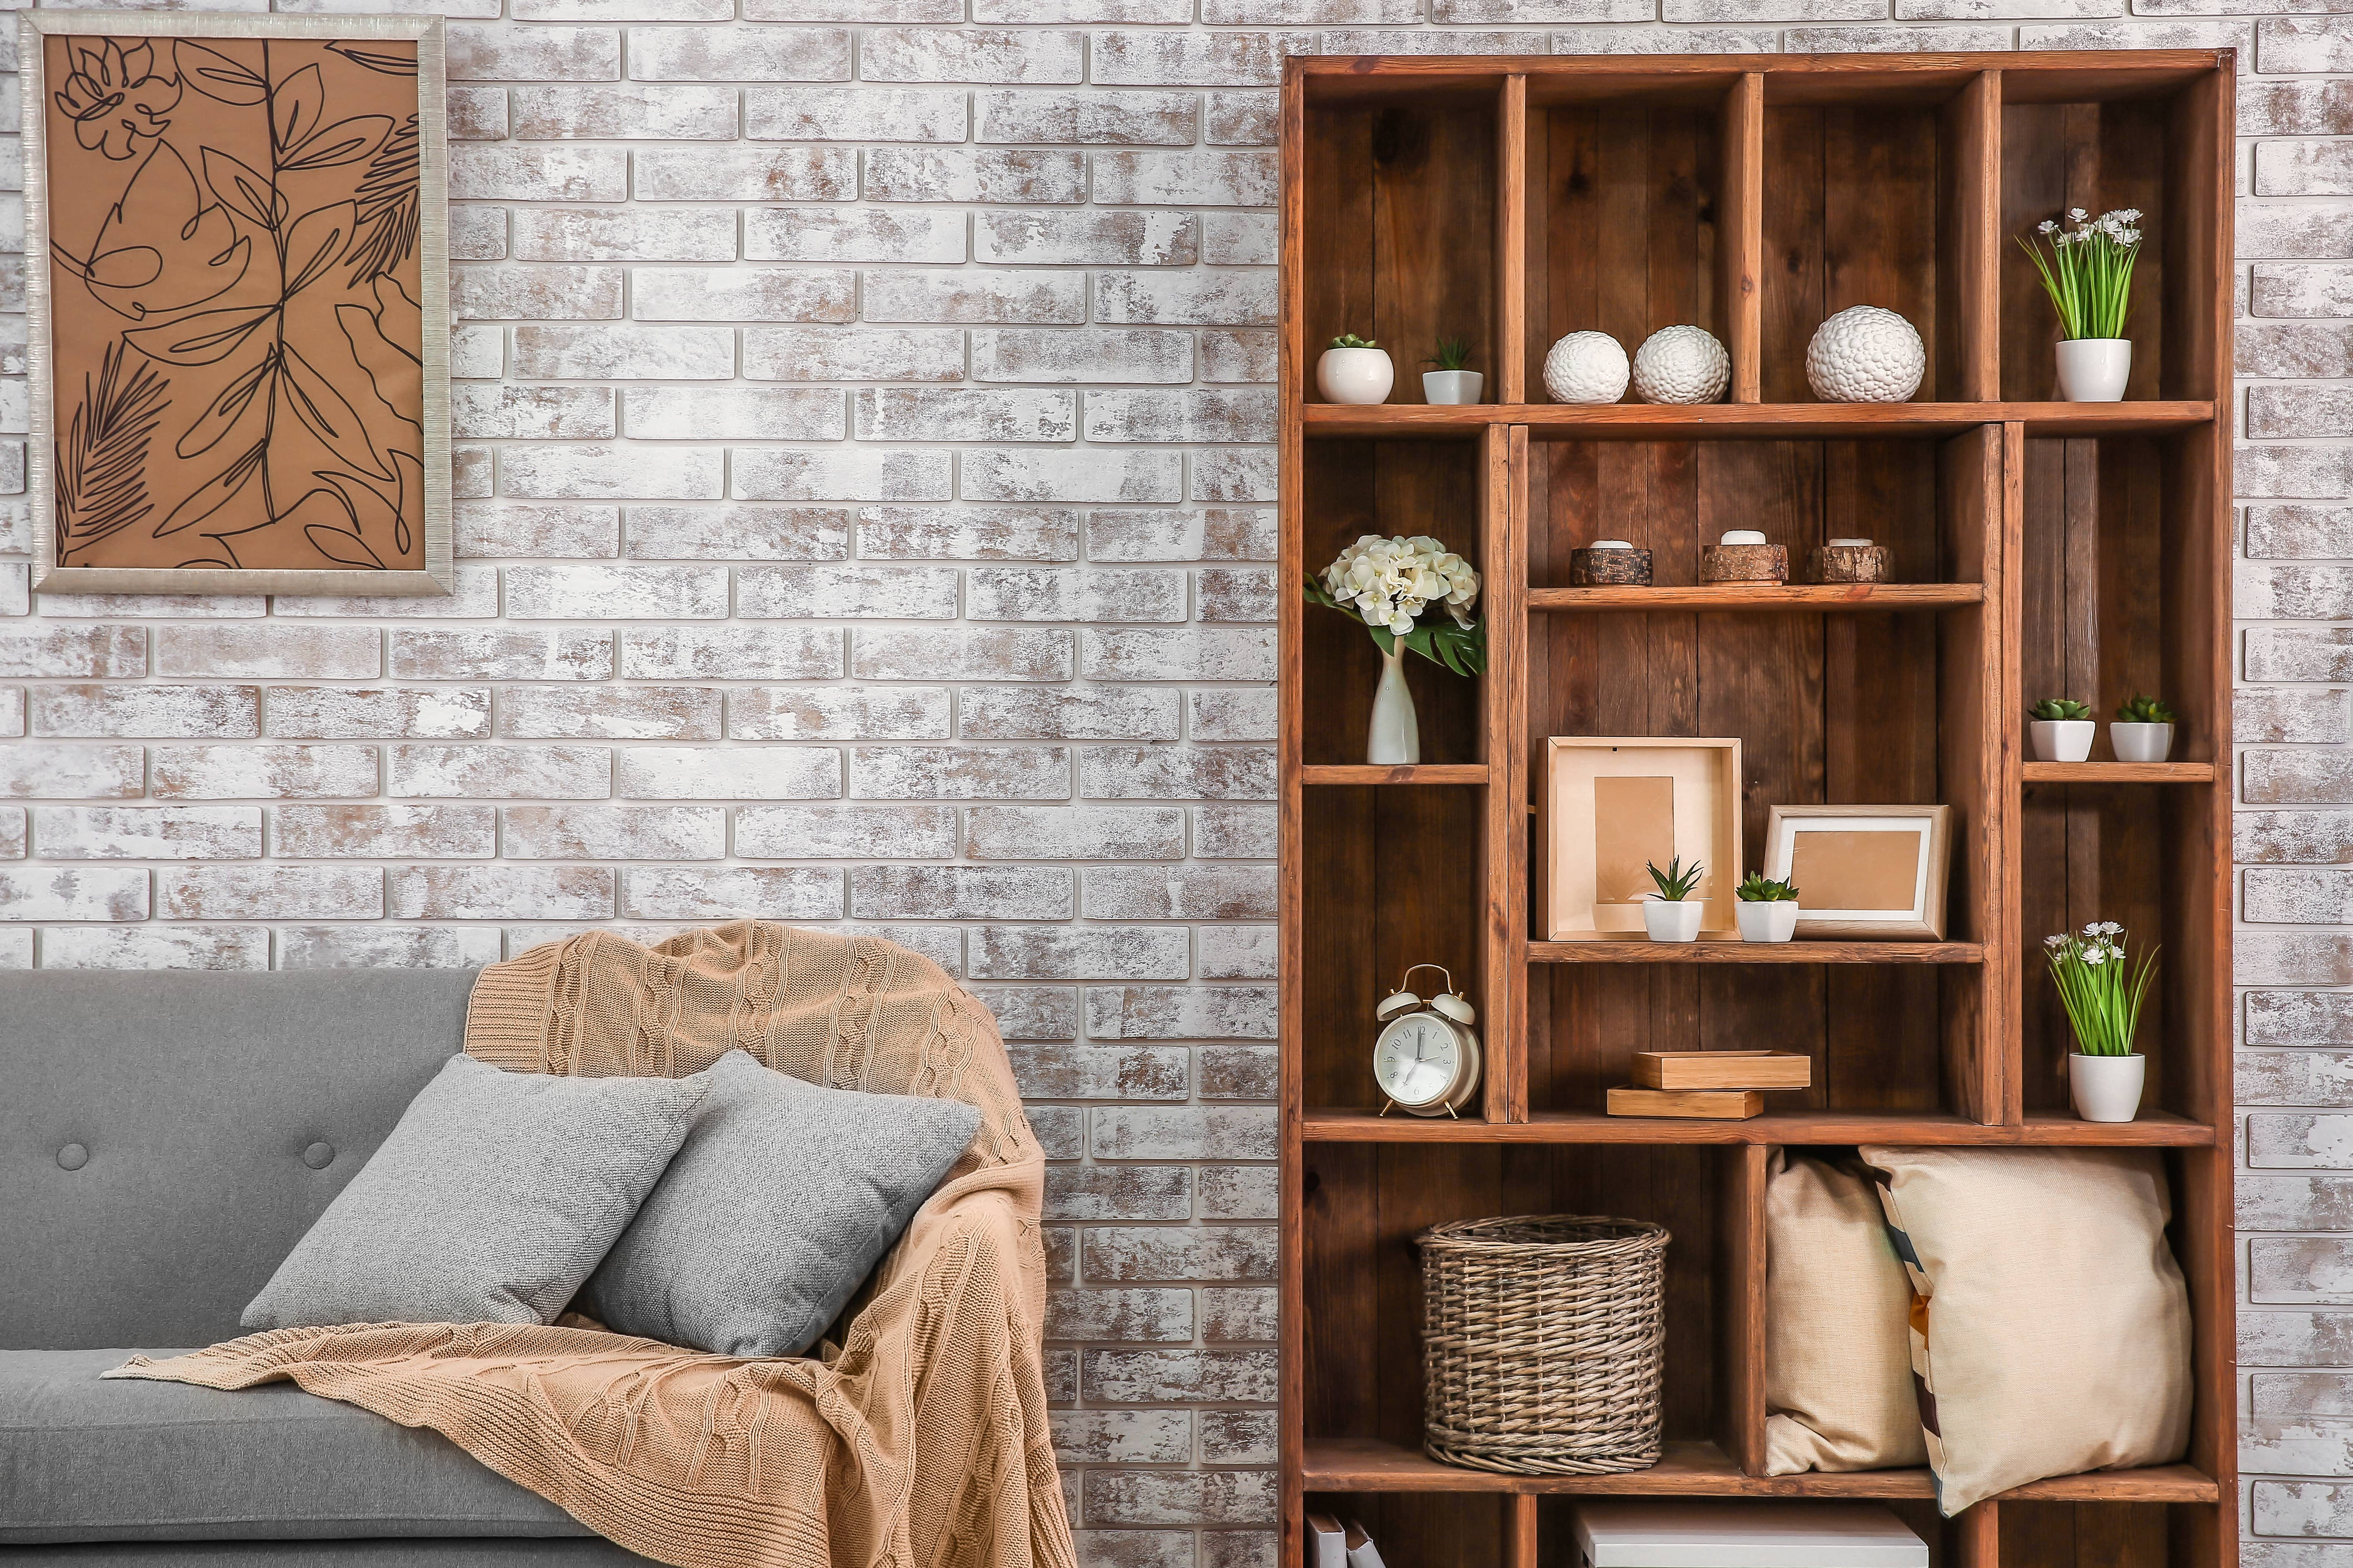 How To Diy Living Room Storage Cabinet, How To Build Storage Cabinets For Living Room